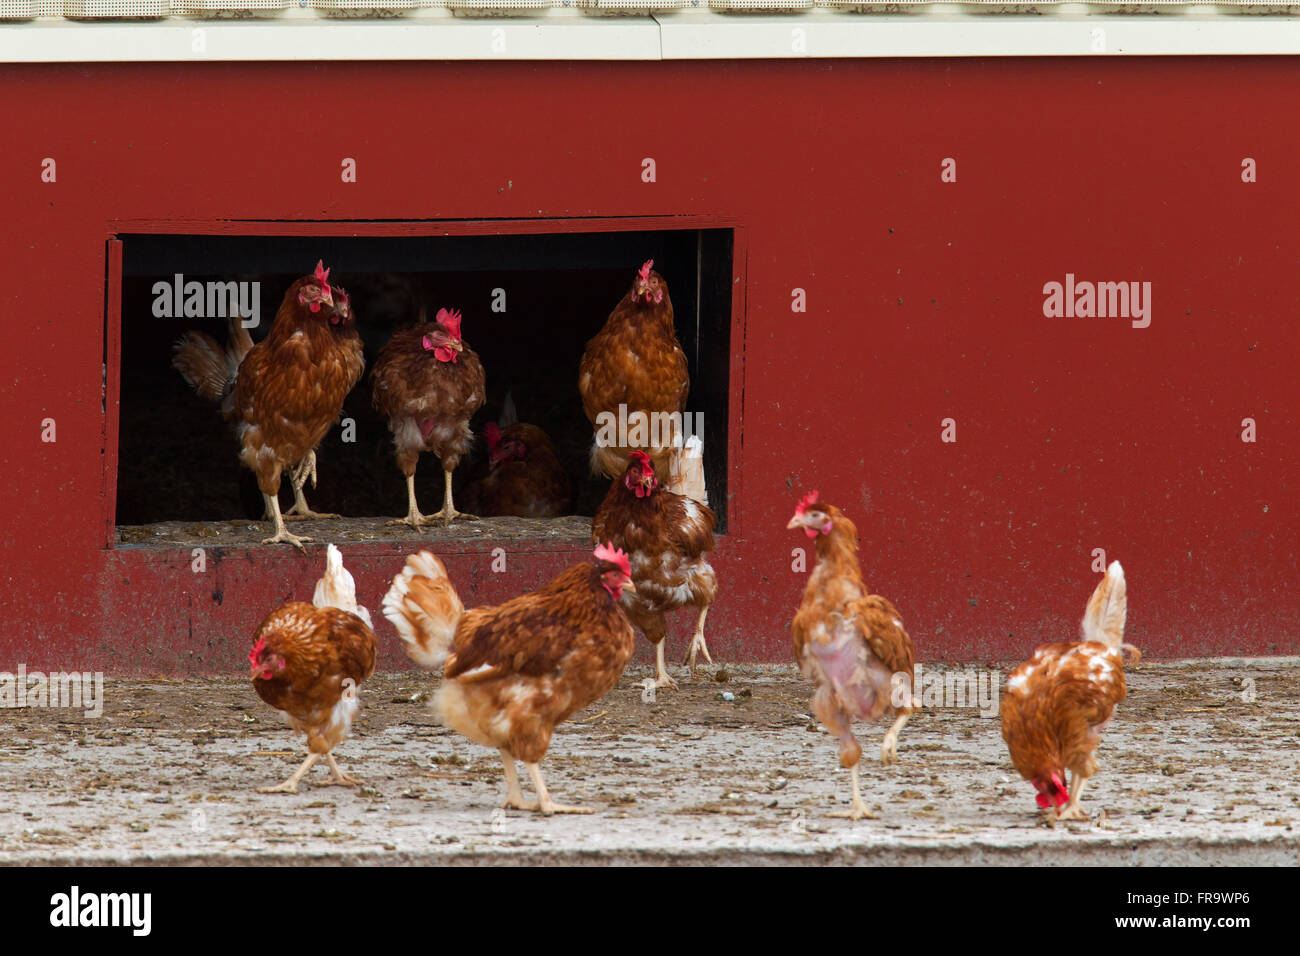 Domestic chickens (Gallus gallus domesticus), commercial free range hens leaving chicken coop - Stock Image